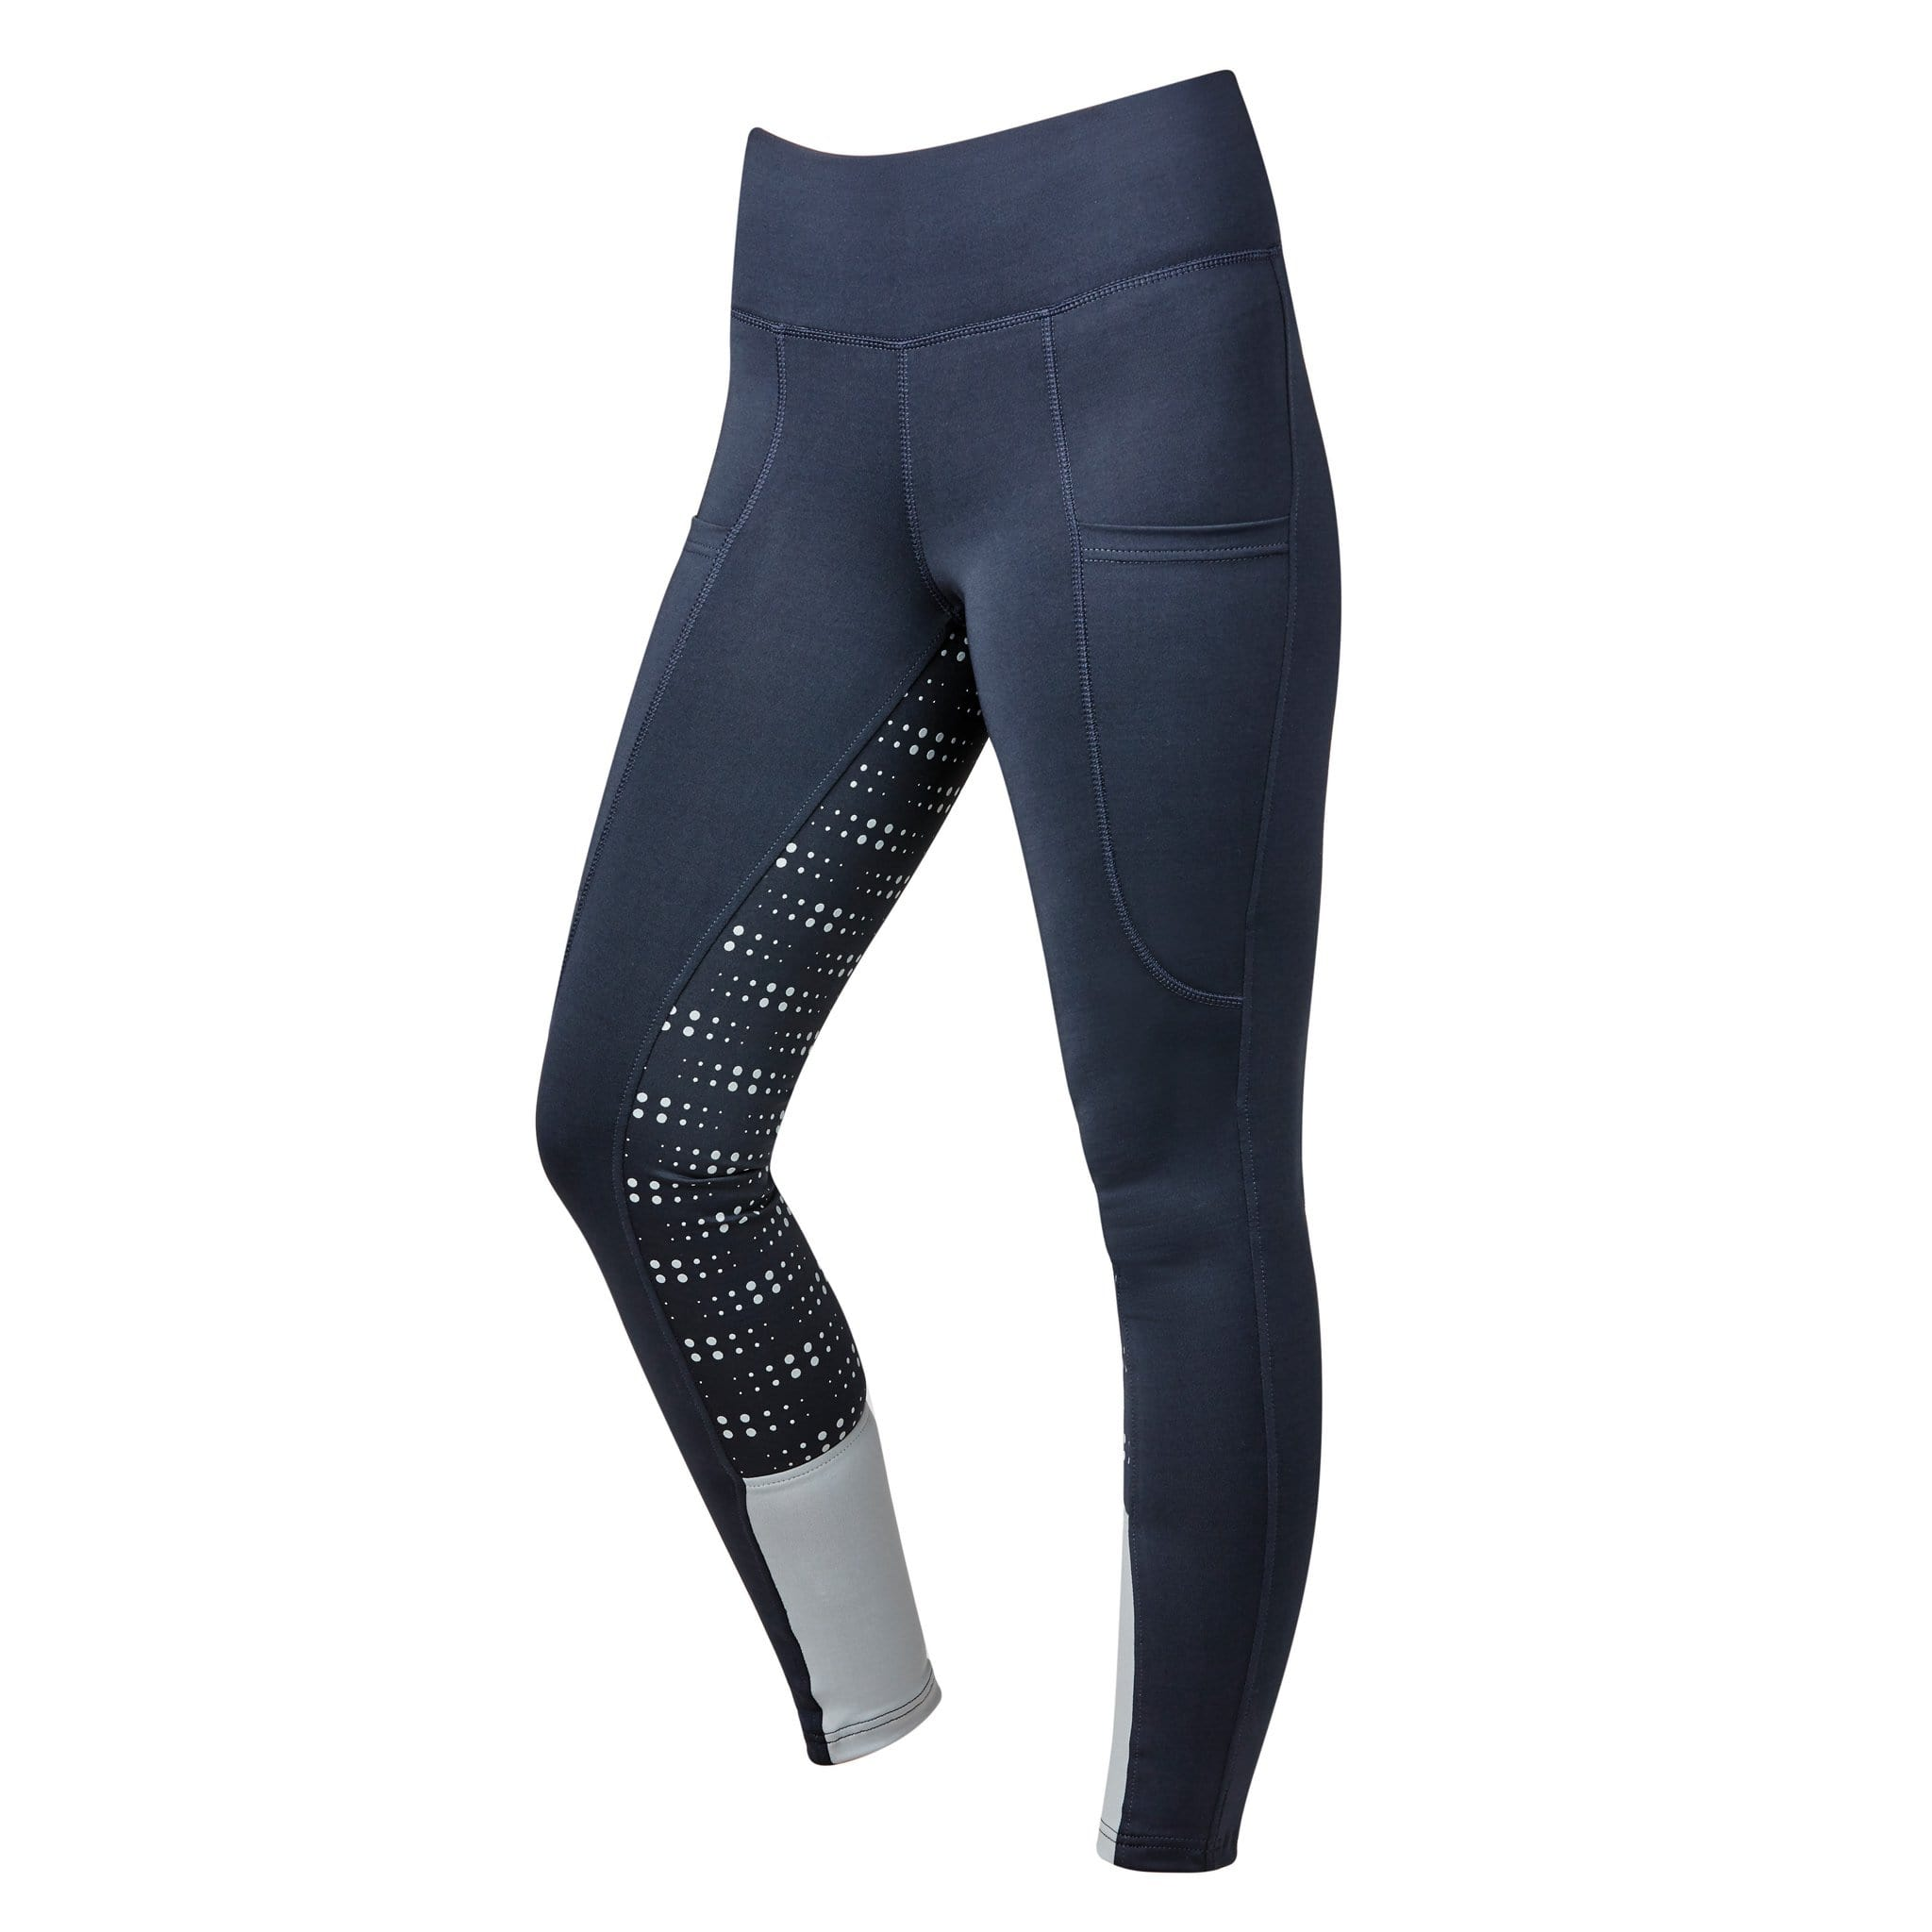 Dublin Performance Cool-It Dot Silicone Full Seat Riding Tights 1001825 Navy Front